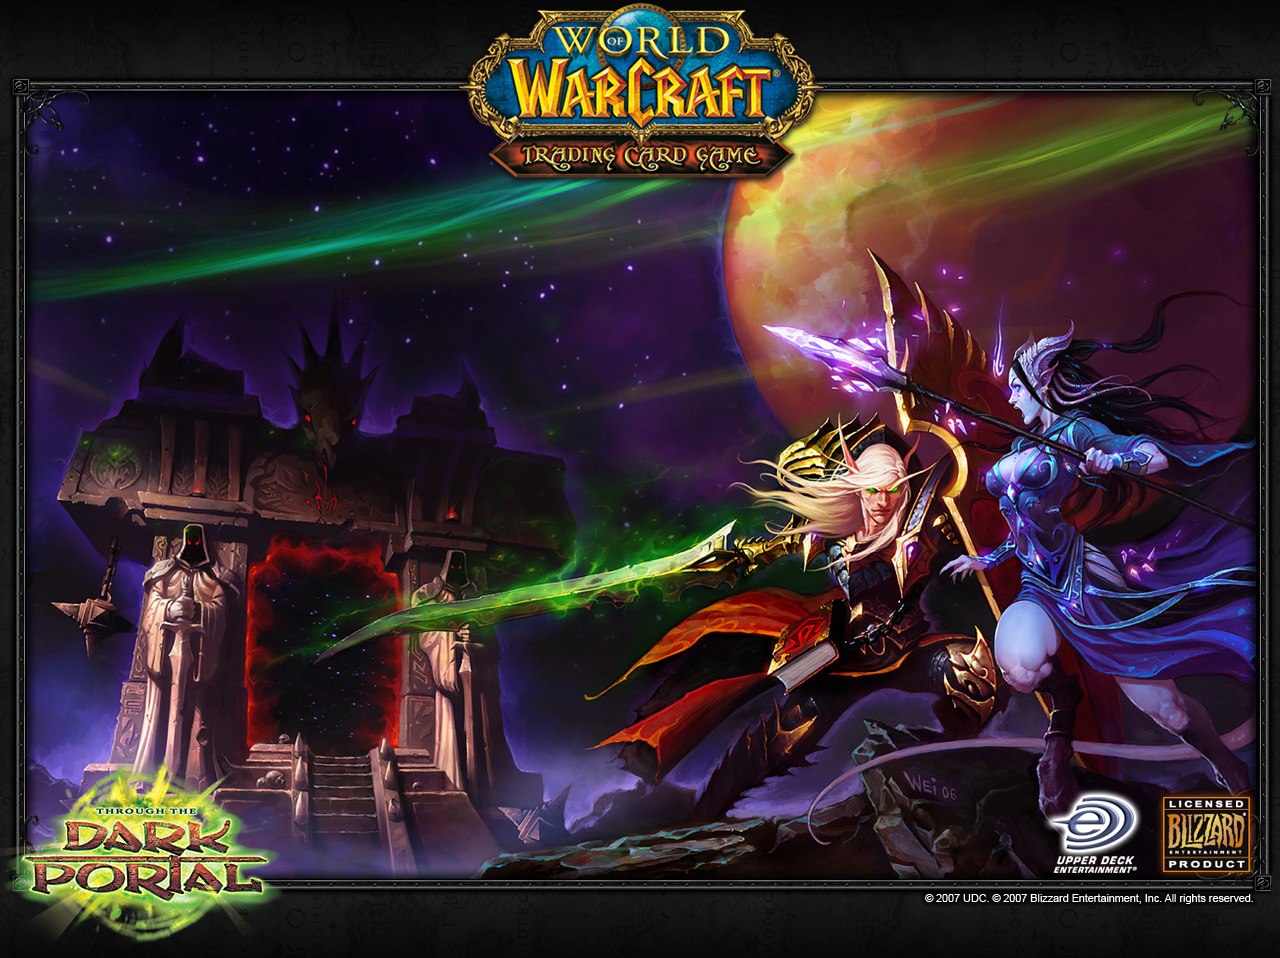 World of Warcraft TCG HD wallpapers all free in 3D render